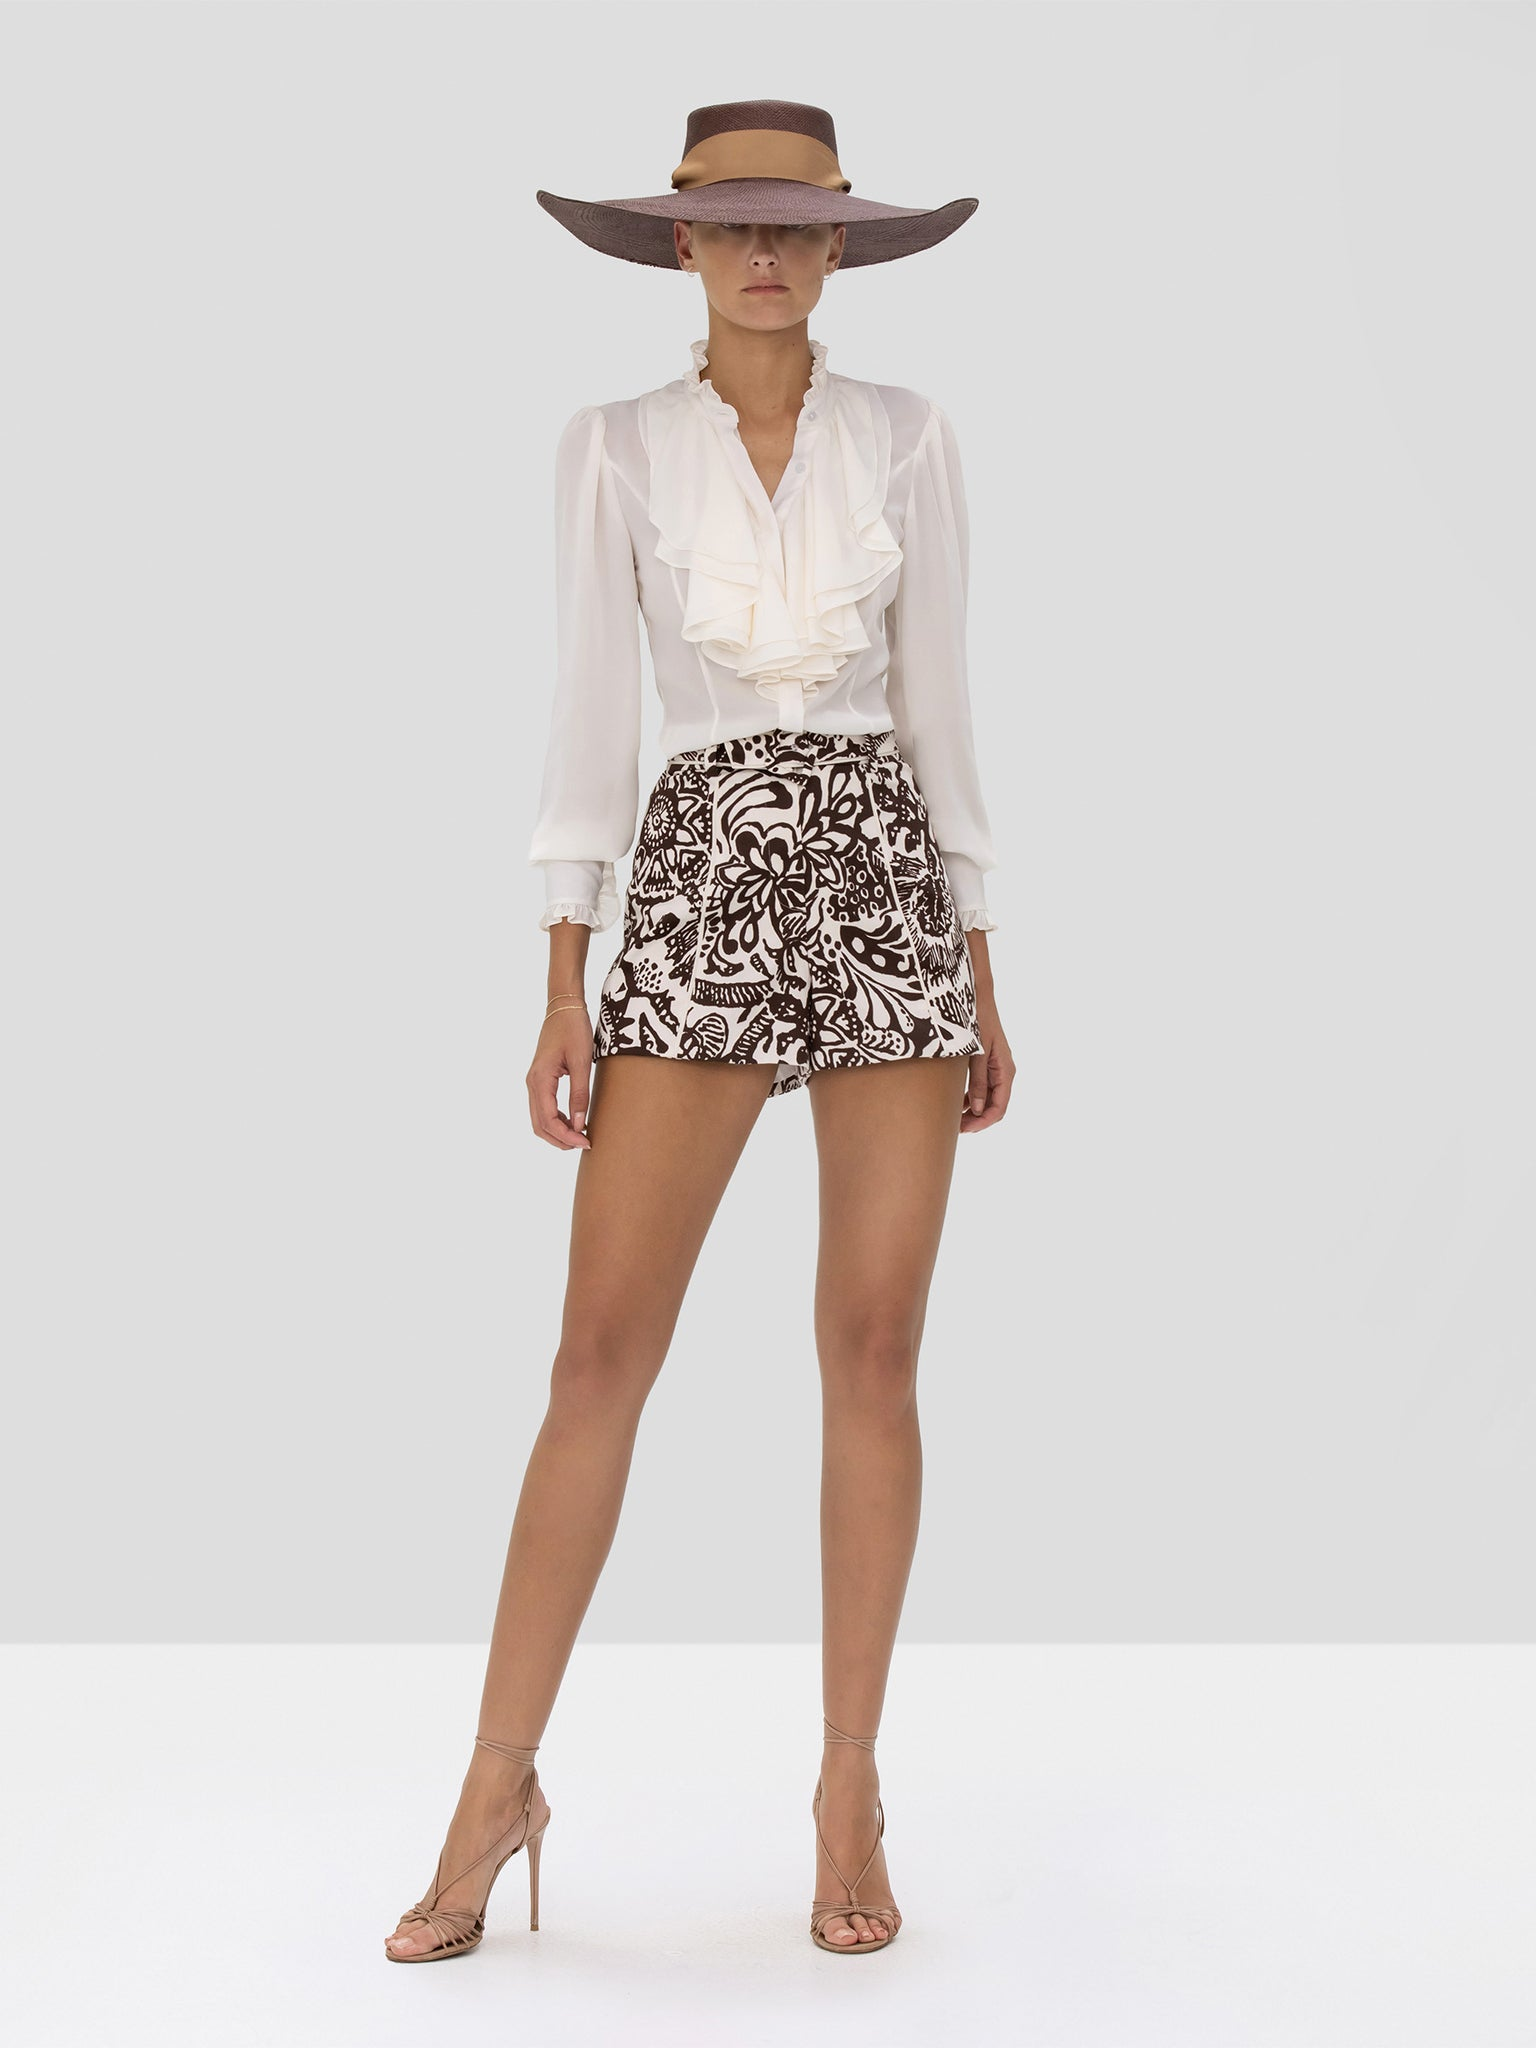 Alexis Ferdinand Top in Ivory and Lew Short in Tropical Brown from Spring Summer 2020 Collection